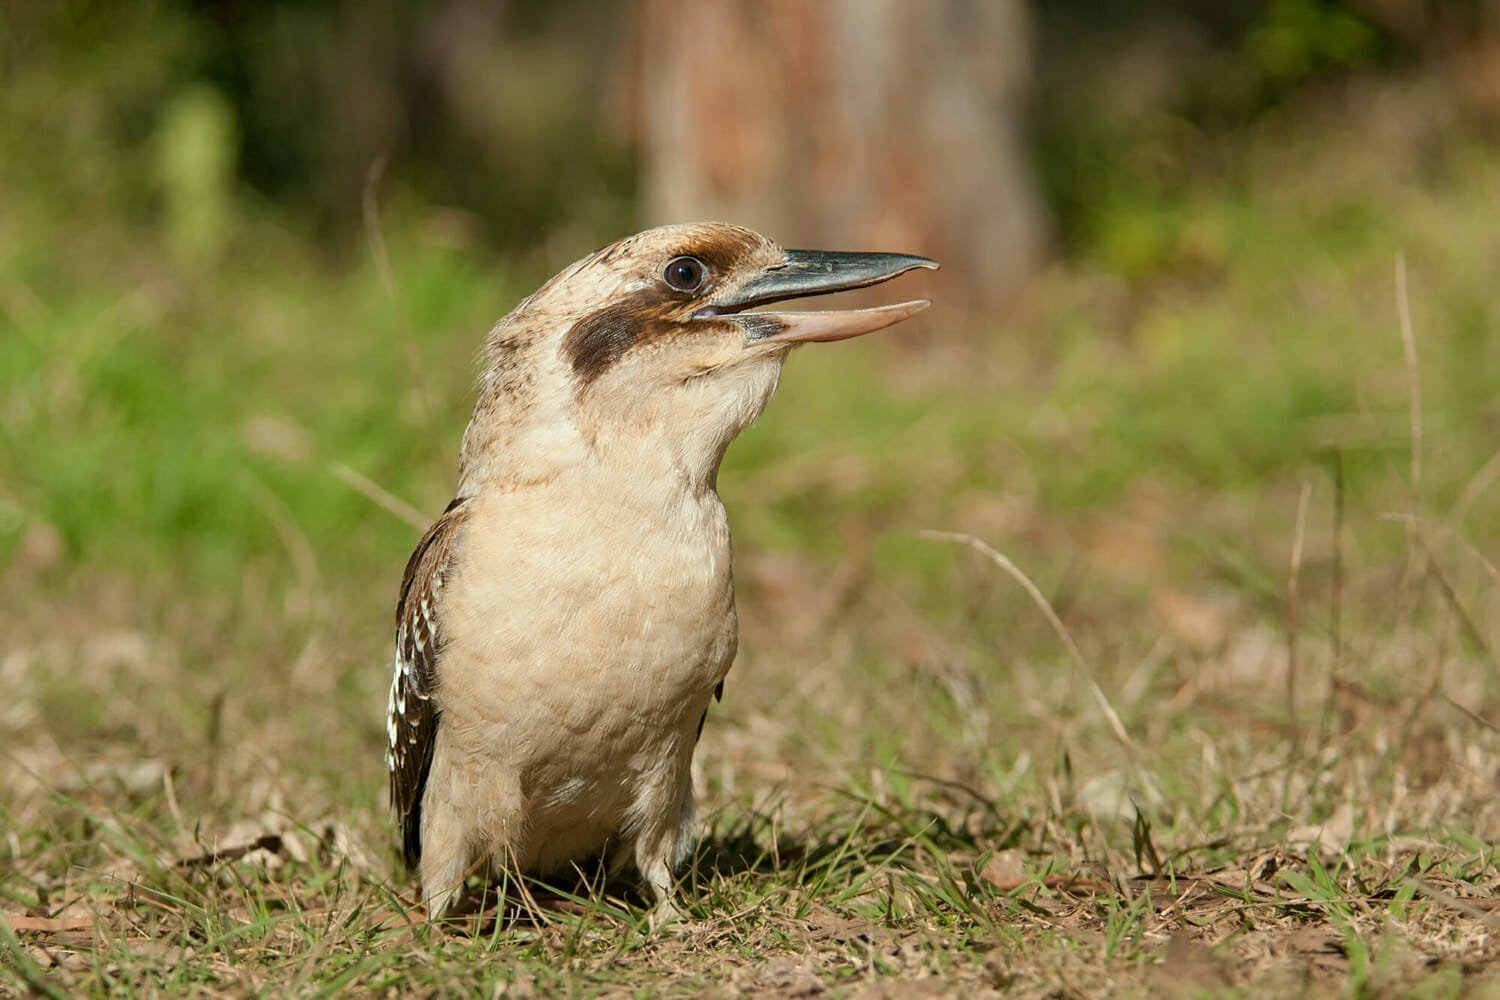 Laughing kookaburra at Euroka clearning